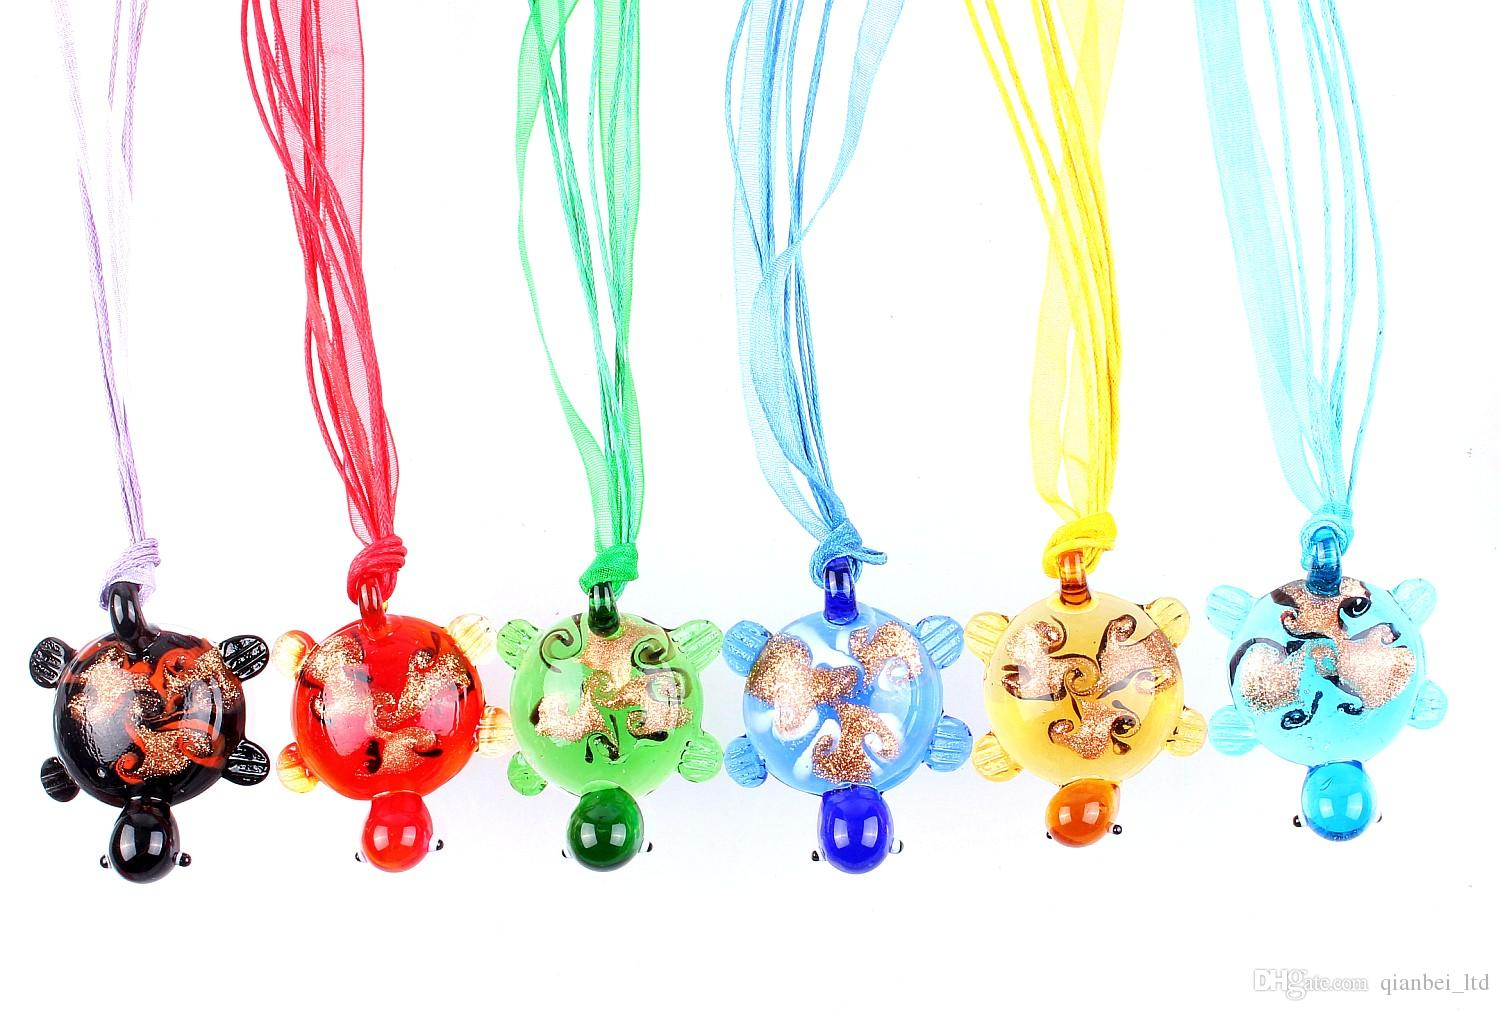 QianBei Wholesale Multicolor Gold Sand Turtle murano Lampwork Glass Pendant necklaces Jewelry Accessory handmade Craft Jewelry